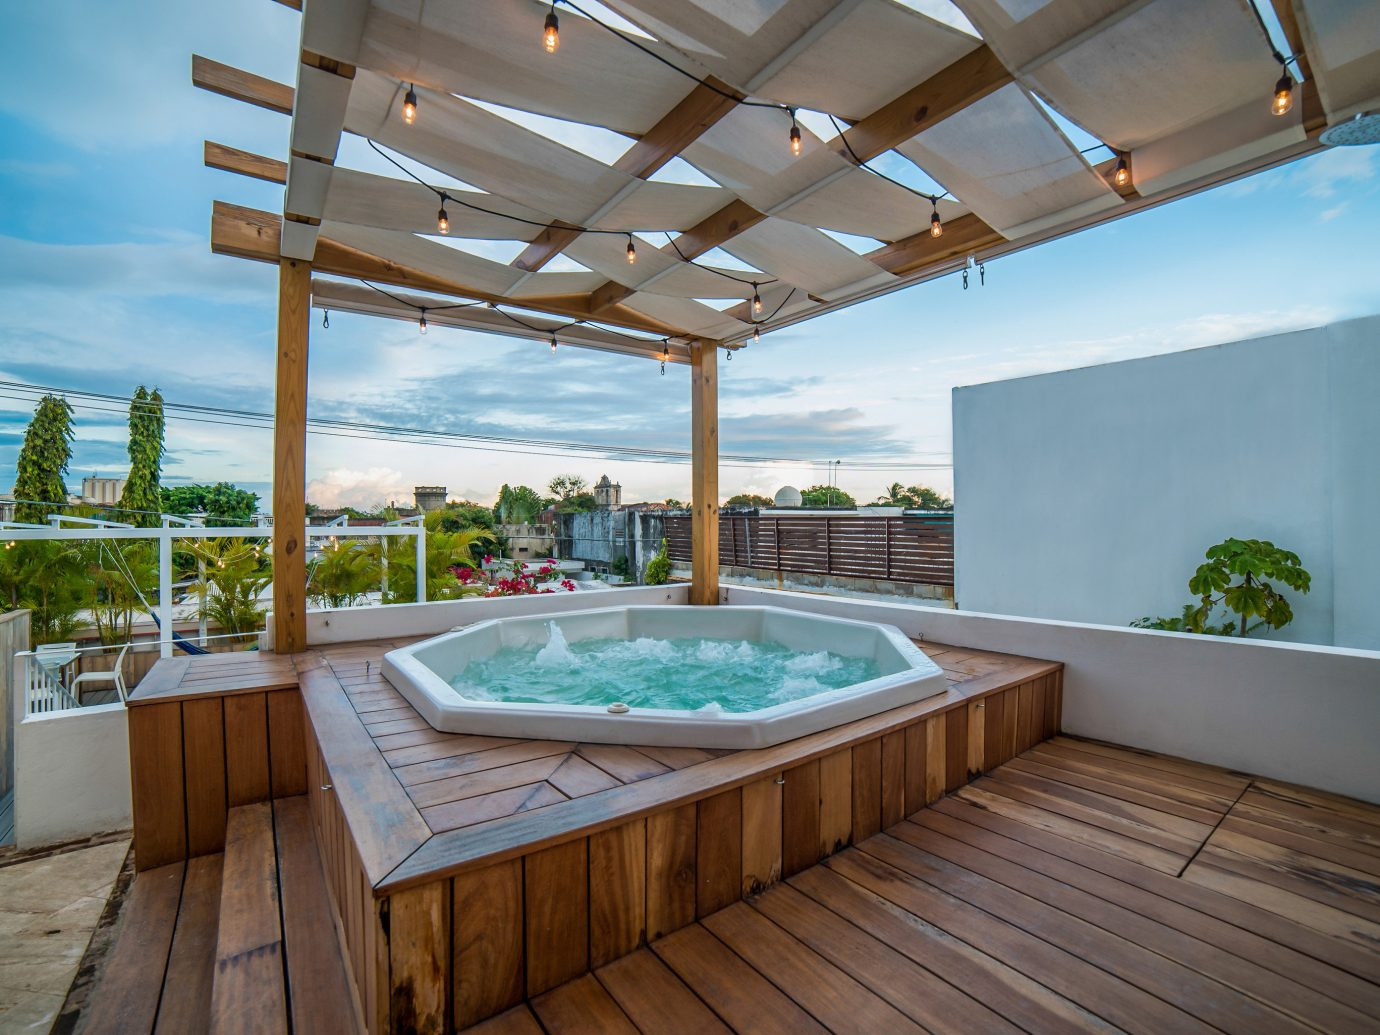 Luca Hotel Jacuzzi In DR